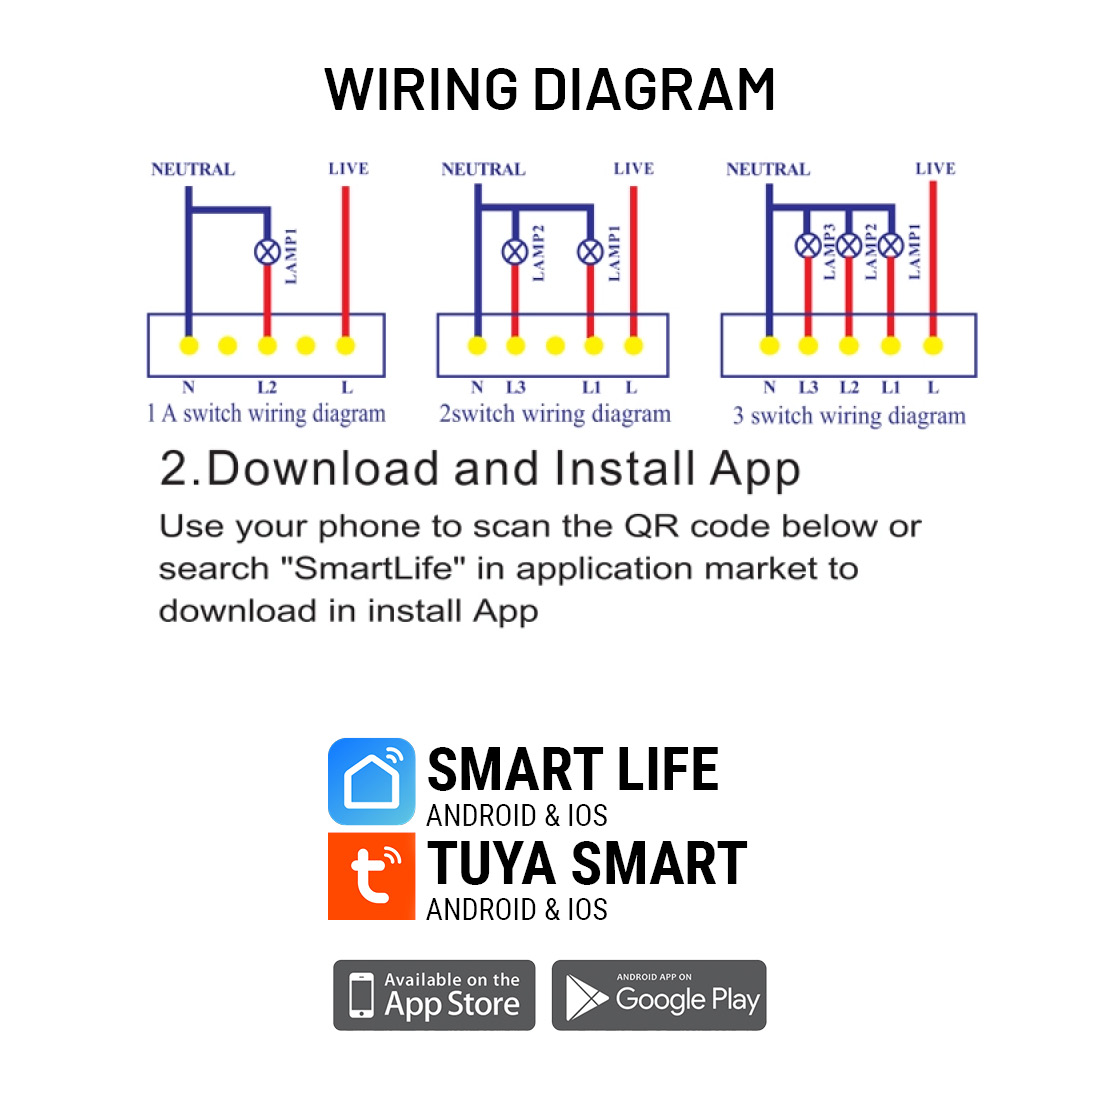 SMART WIFI Light Switch 3-GANG BLACK GLASS Touch Panel Wall LED Indicator -  Smart Home Automation IOT, TUYA / SMART LIFE App (Android, IOS) with Voice